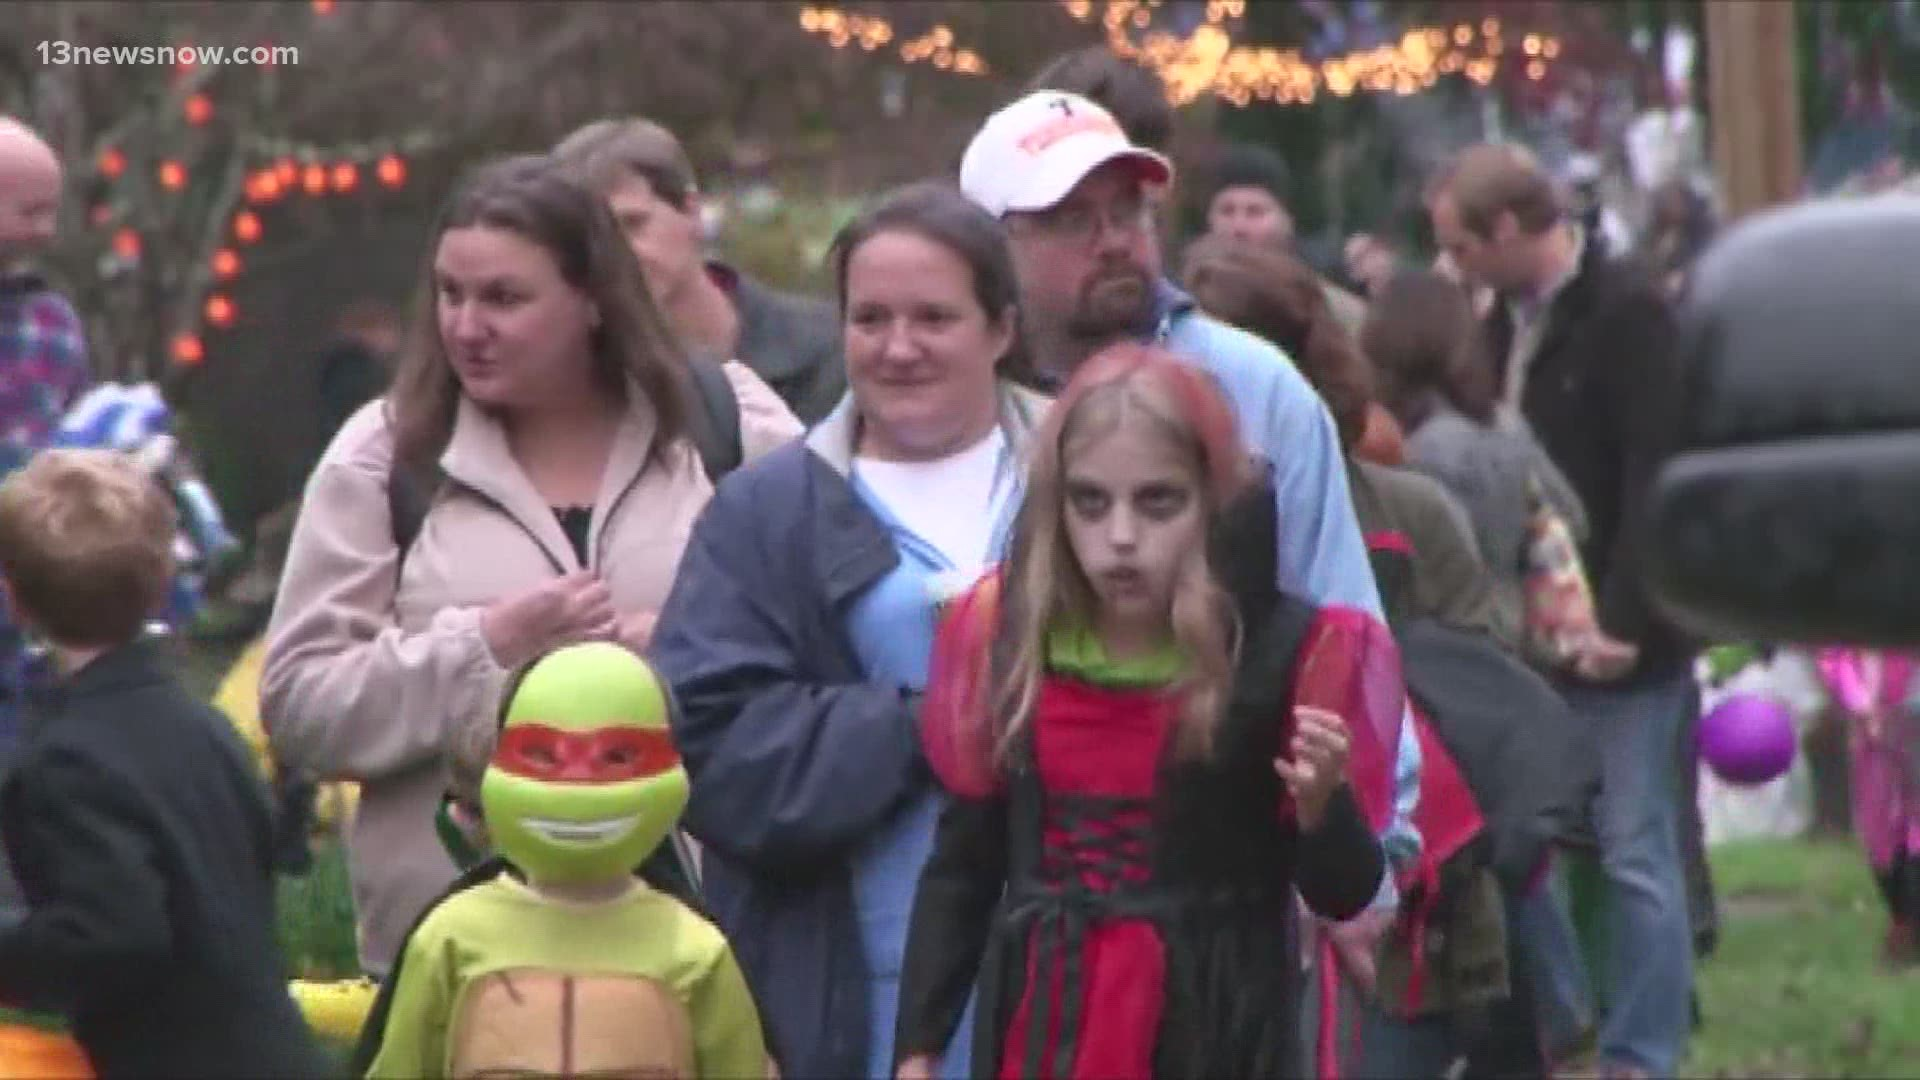 Tmnt 2020 Halloween Trick Or Treat Is Halloween canceled this year? | 13newsnow.com